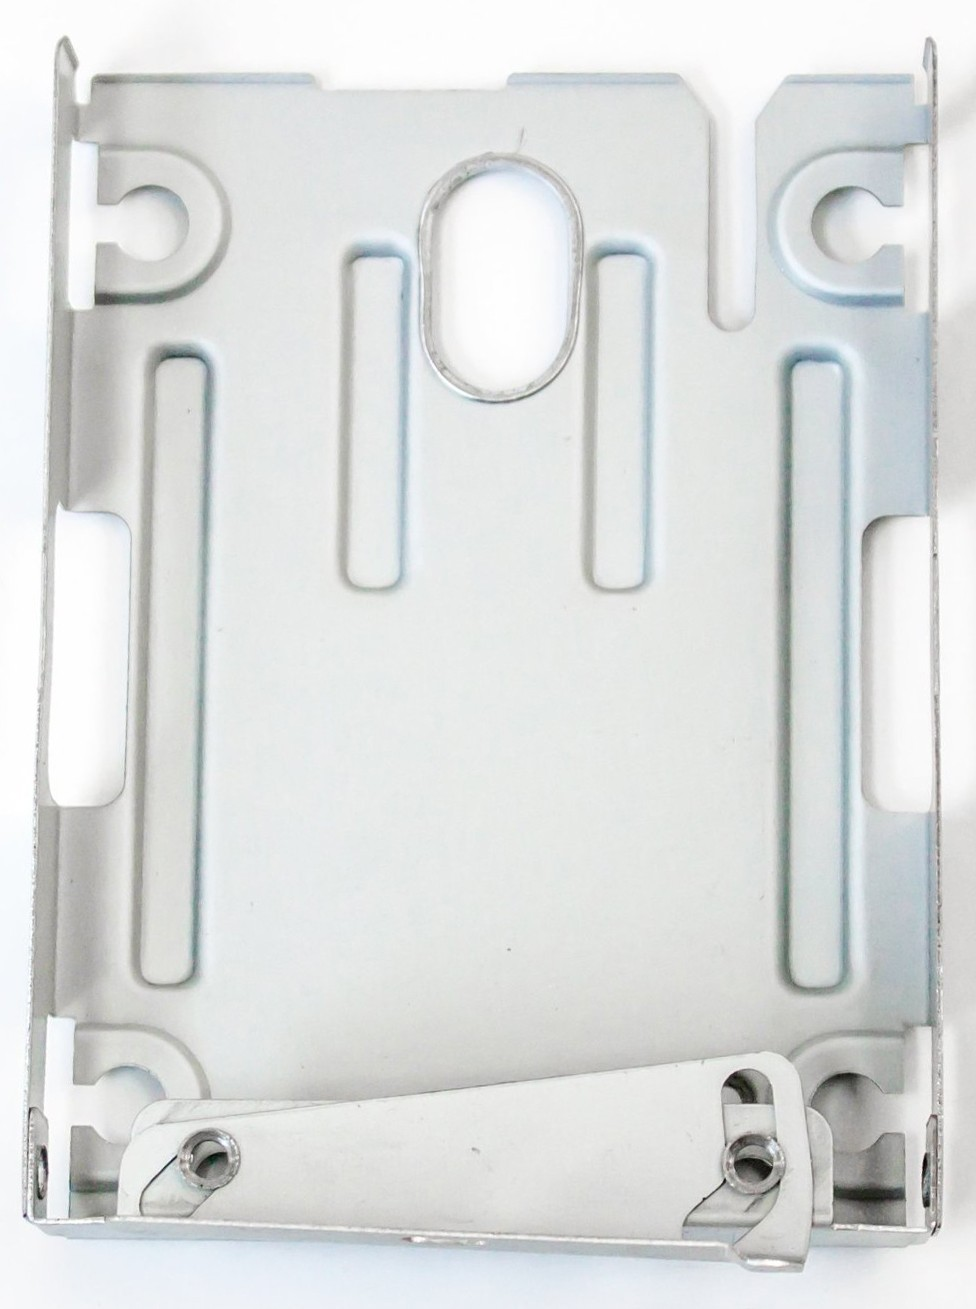 Hard Drive Mounting Kit Bracket for PS3 Super Slim CECH-400x Series carriage